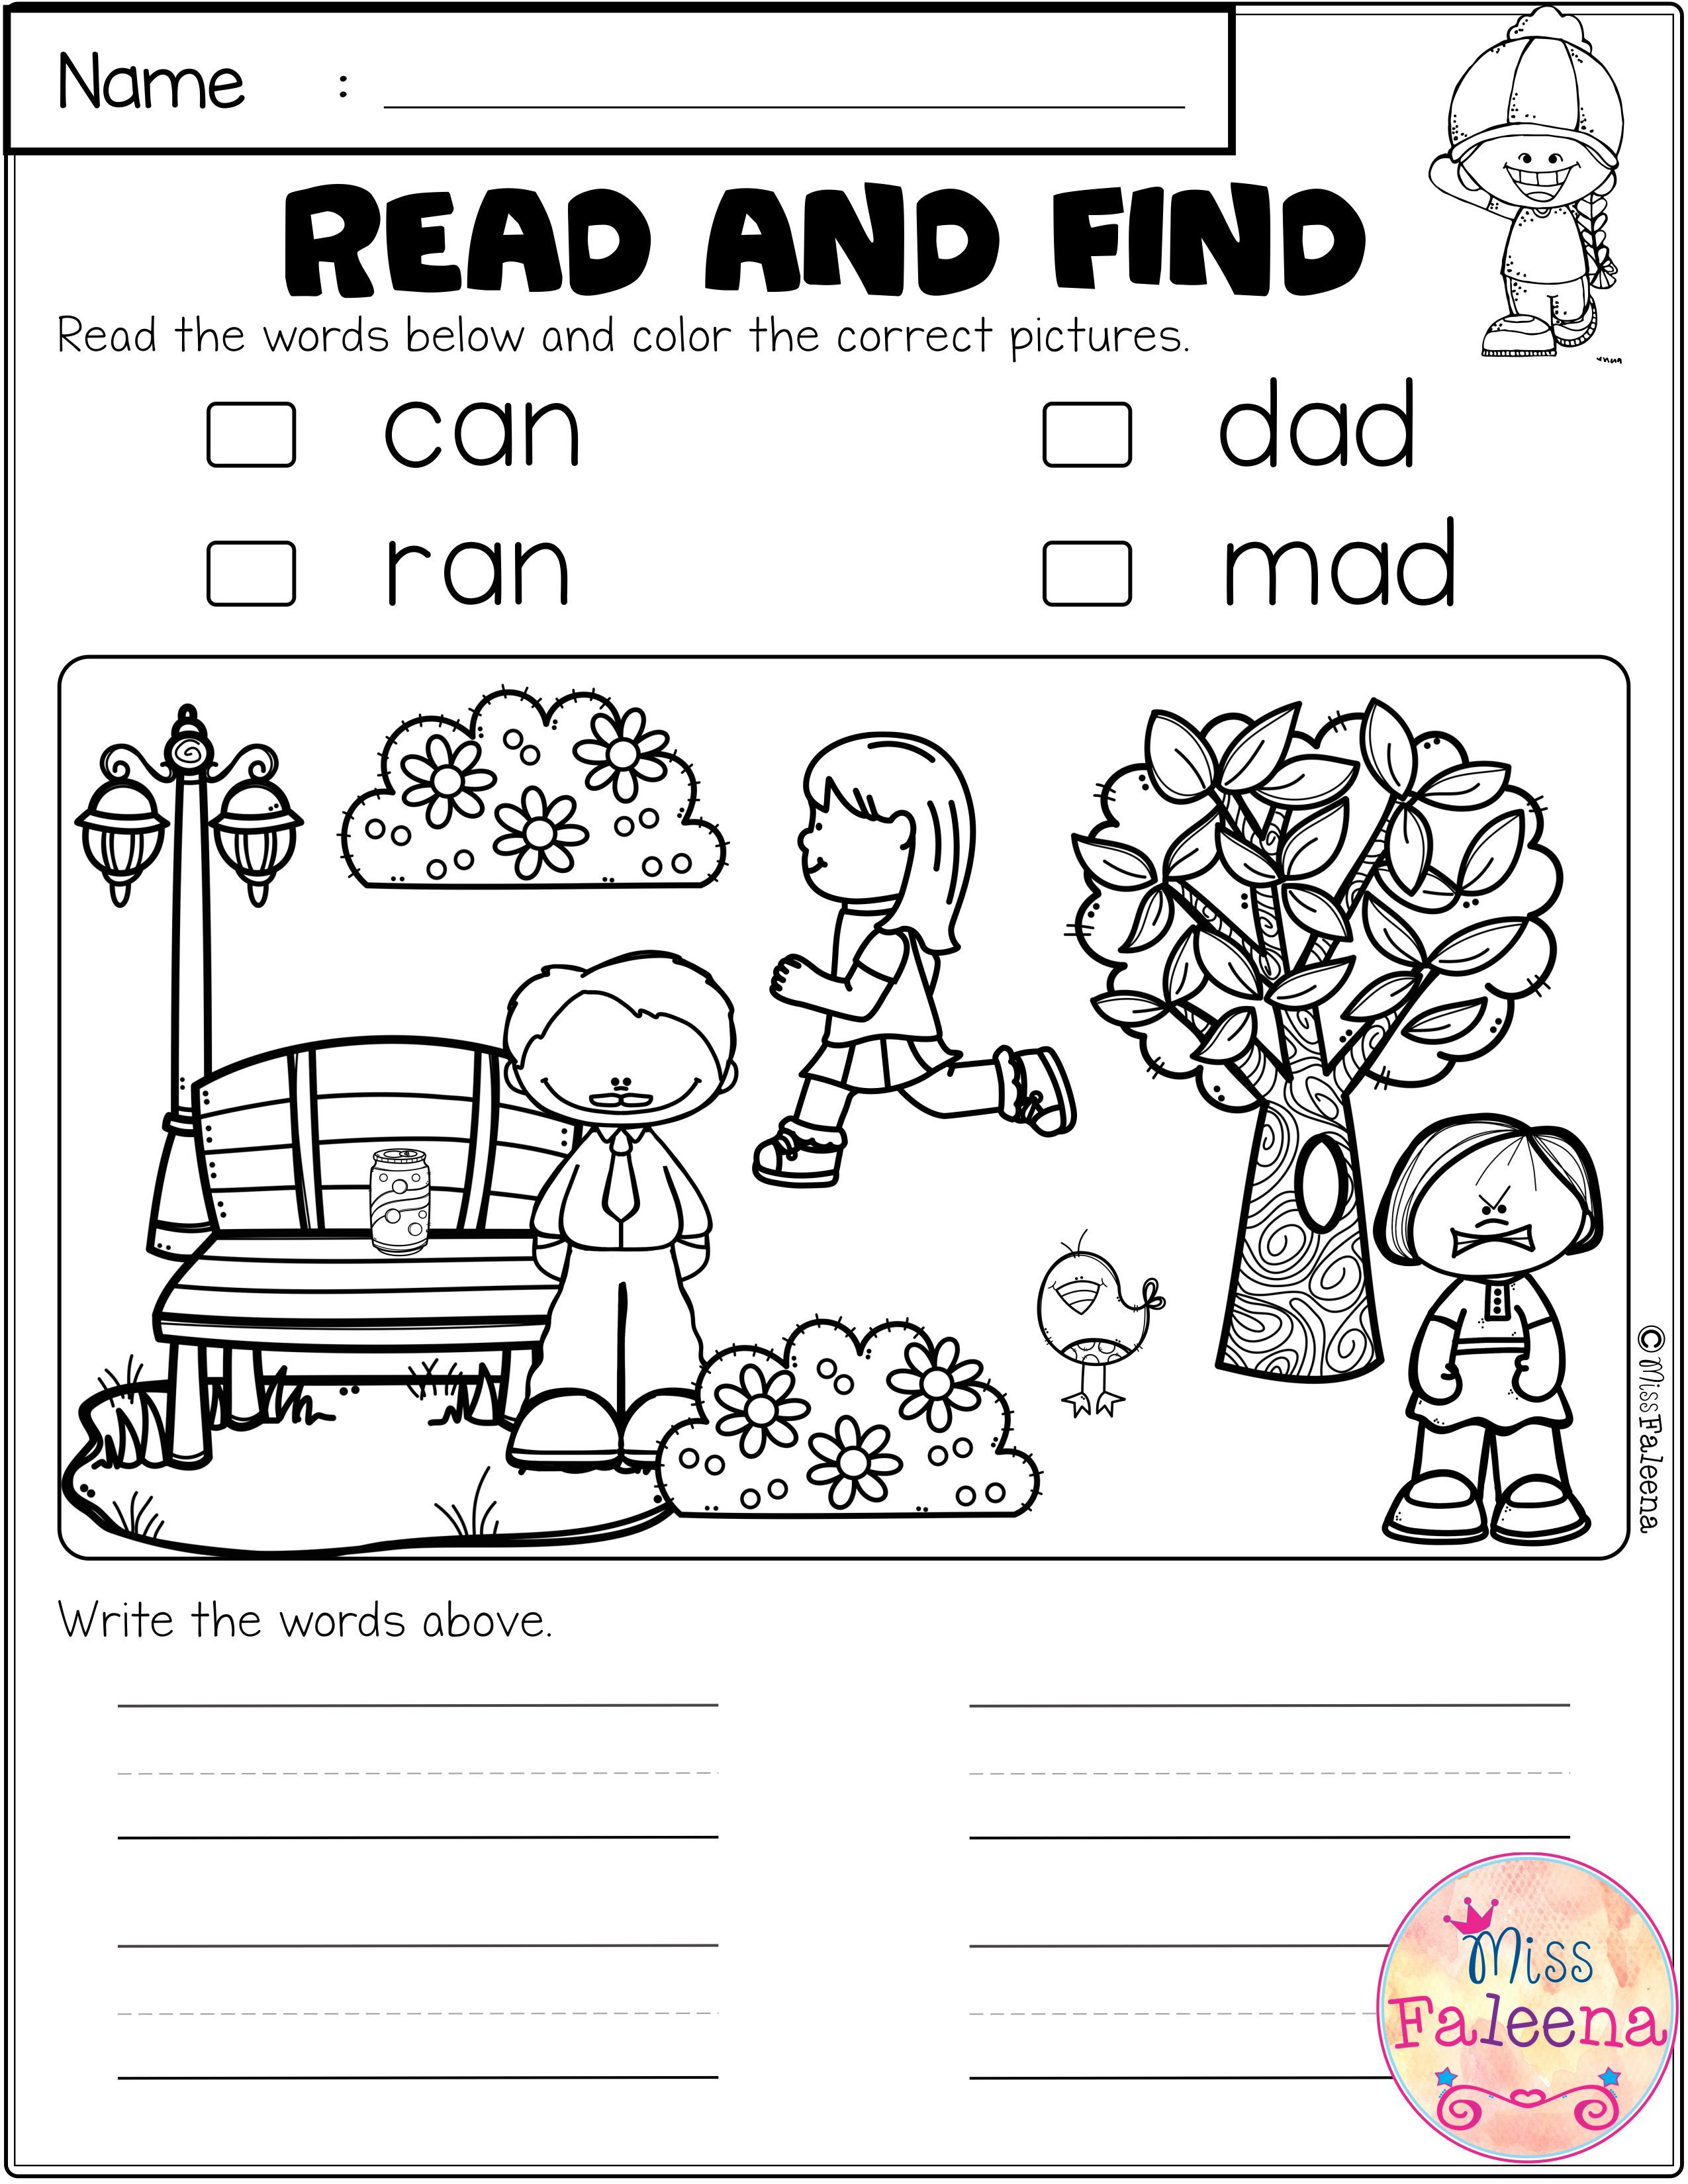 Free Cvc Activities Has 5 Pages Of Cvc Worksheets These Worksheets Help Build Fluency With Tracing Color Cvc Activities Cvc Worksheets First Grade Worksheets [ 3300 x 2550 Pixel ]